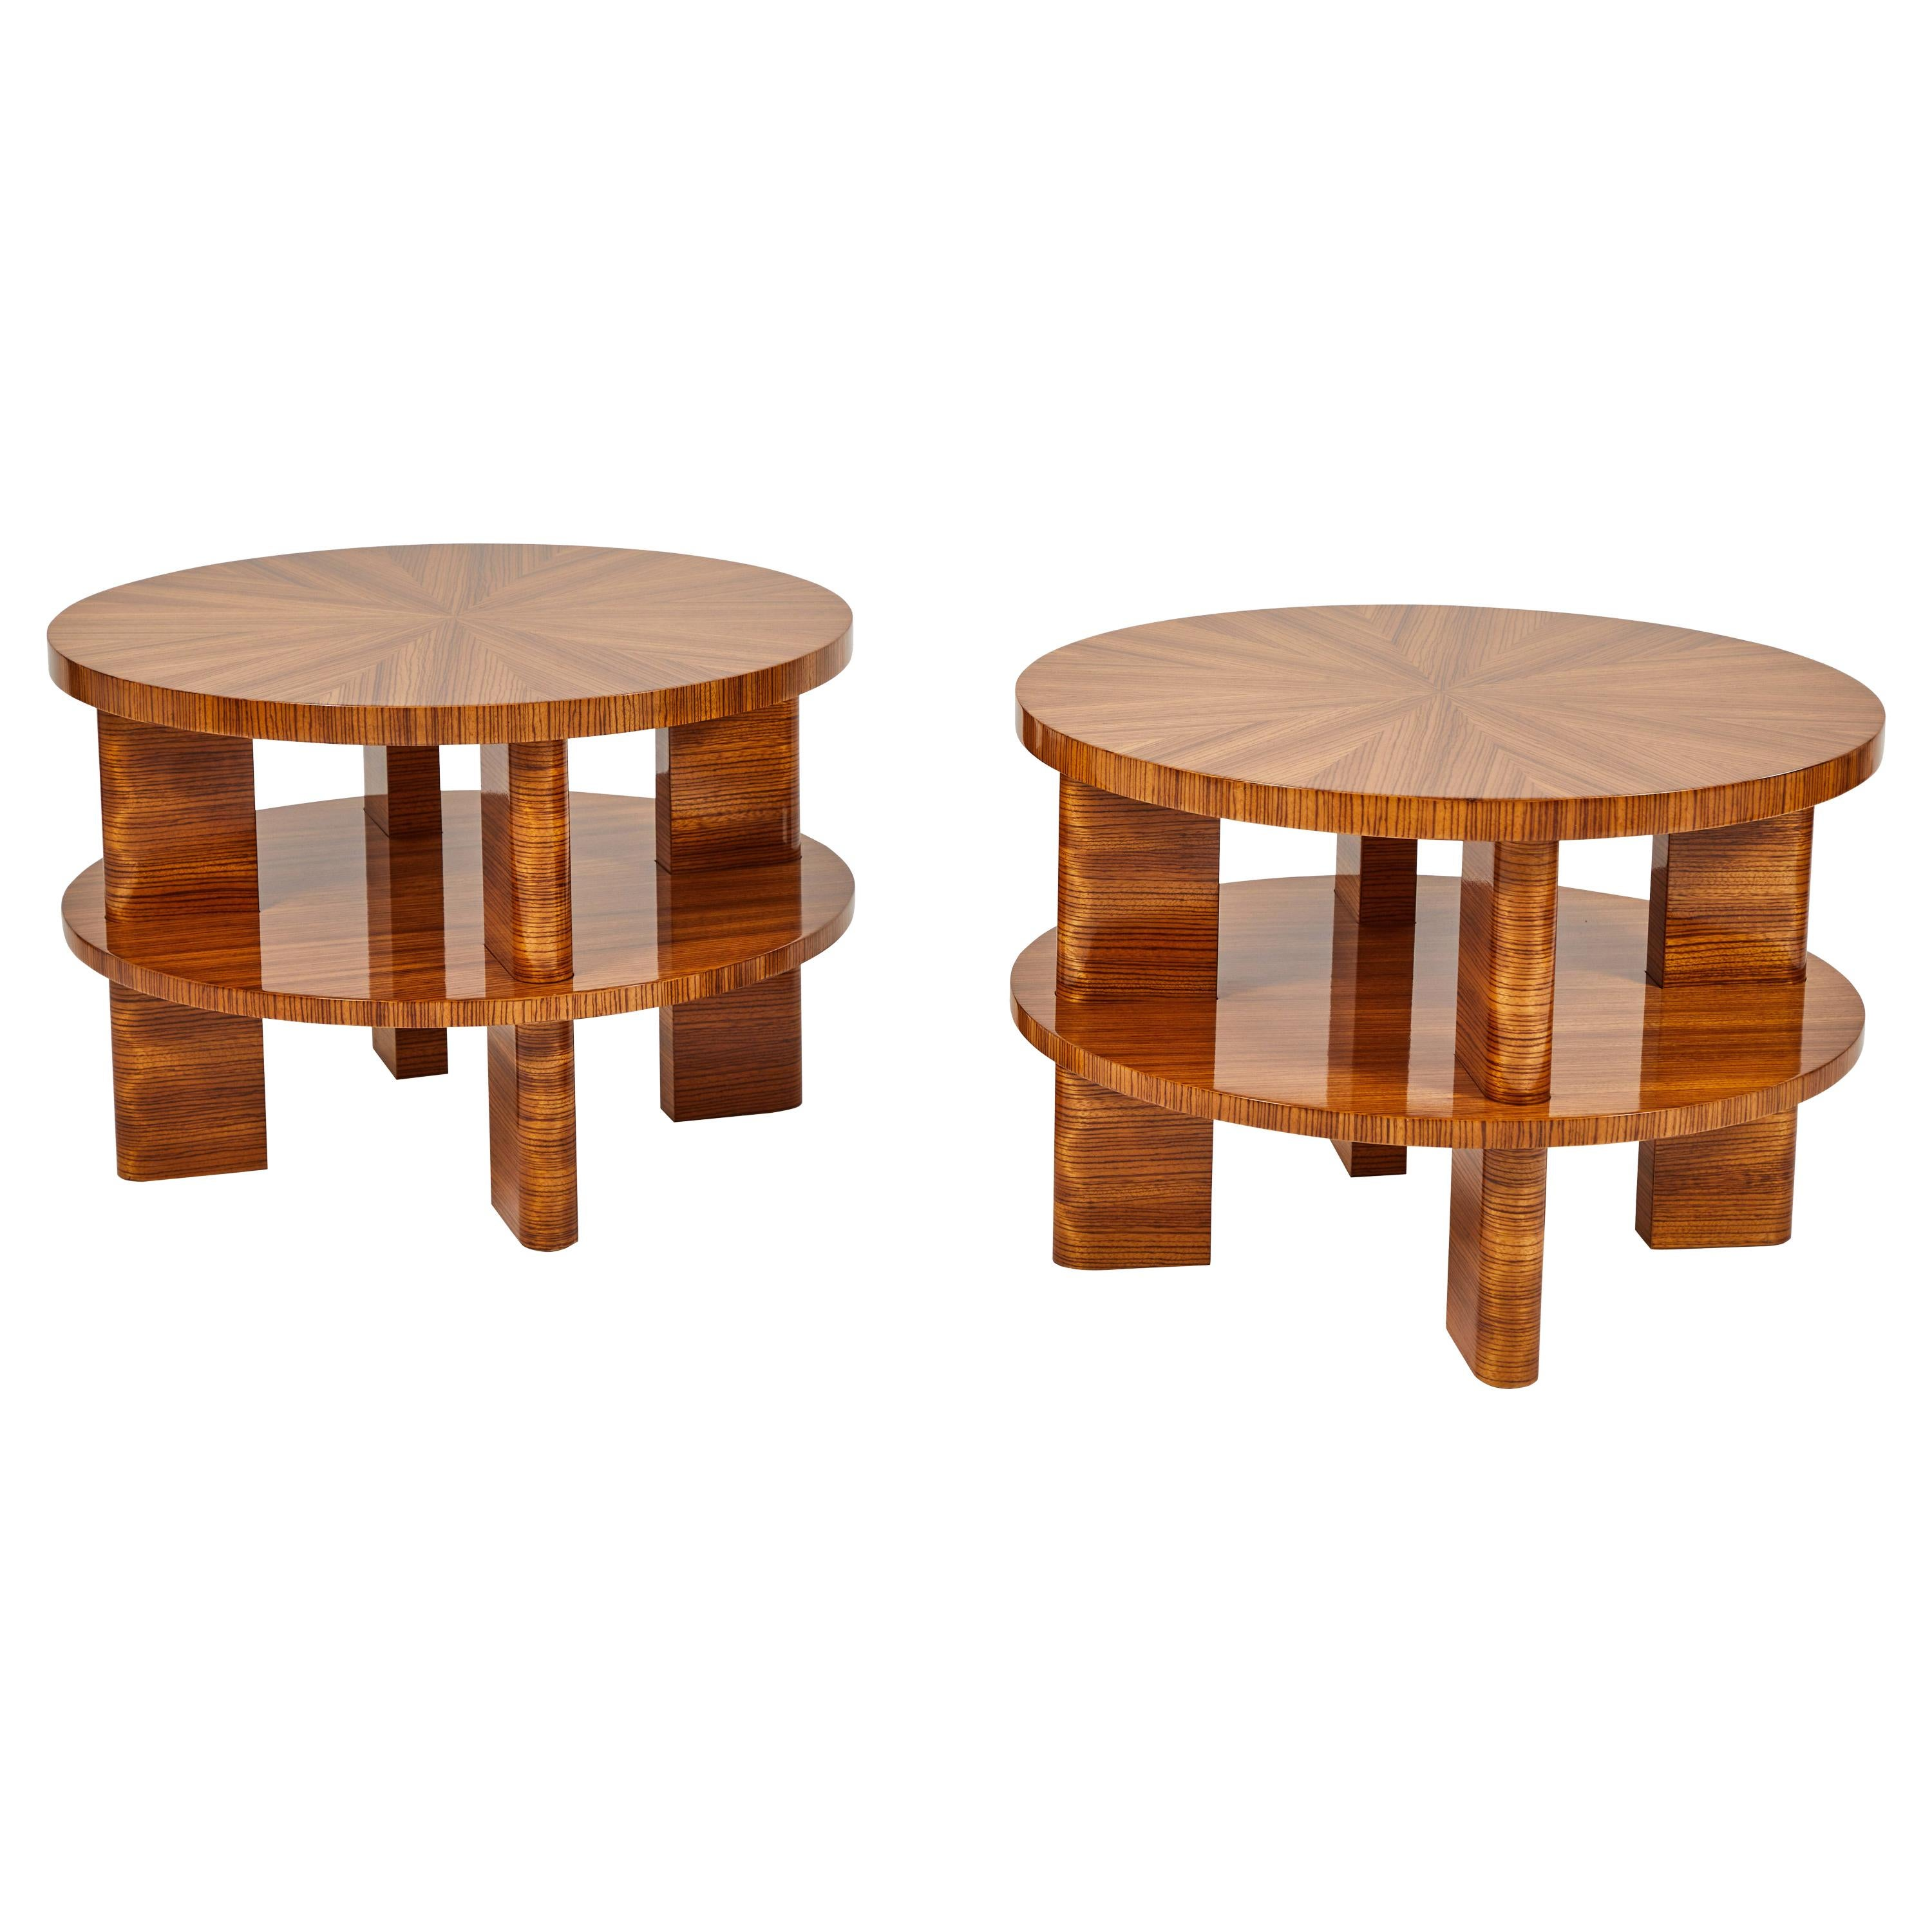 Pair of Art Deco Style Tables